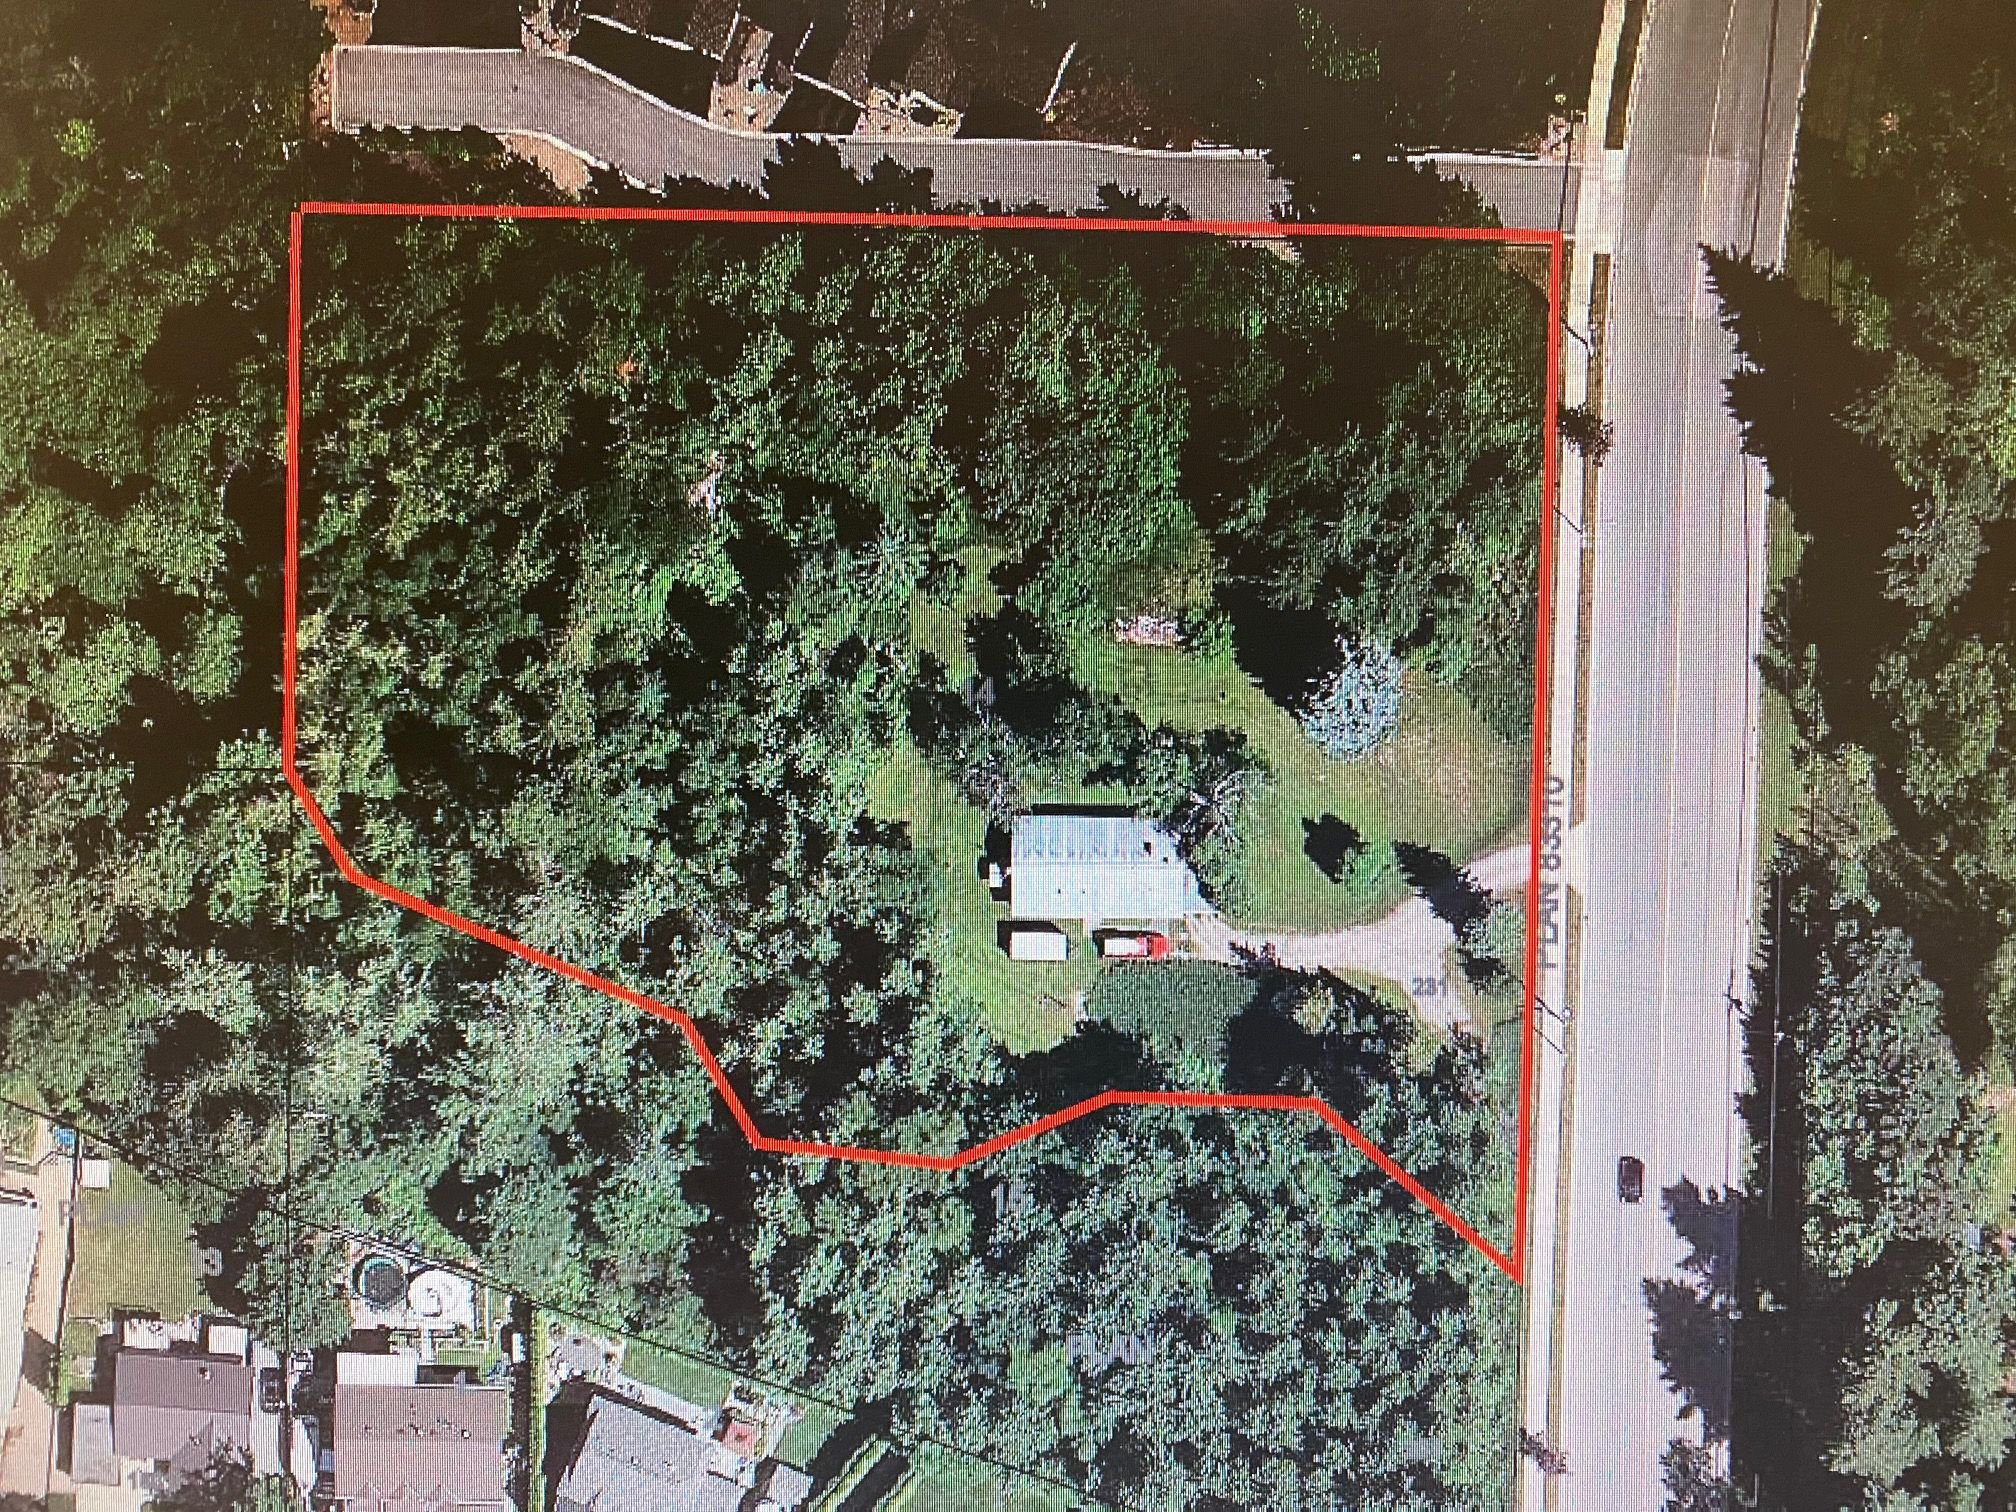 Main Photo: 231 Northeast 20 Street in Salmon Arm: Vacant Land for sale (NE SALMON ARM)  : MLS®# 10217342